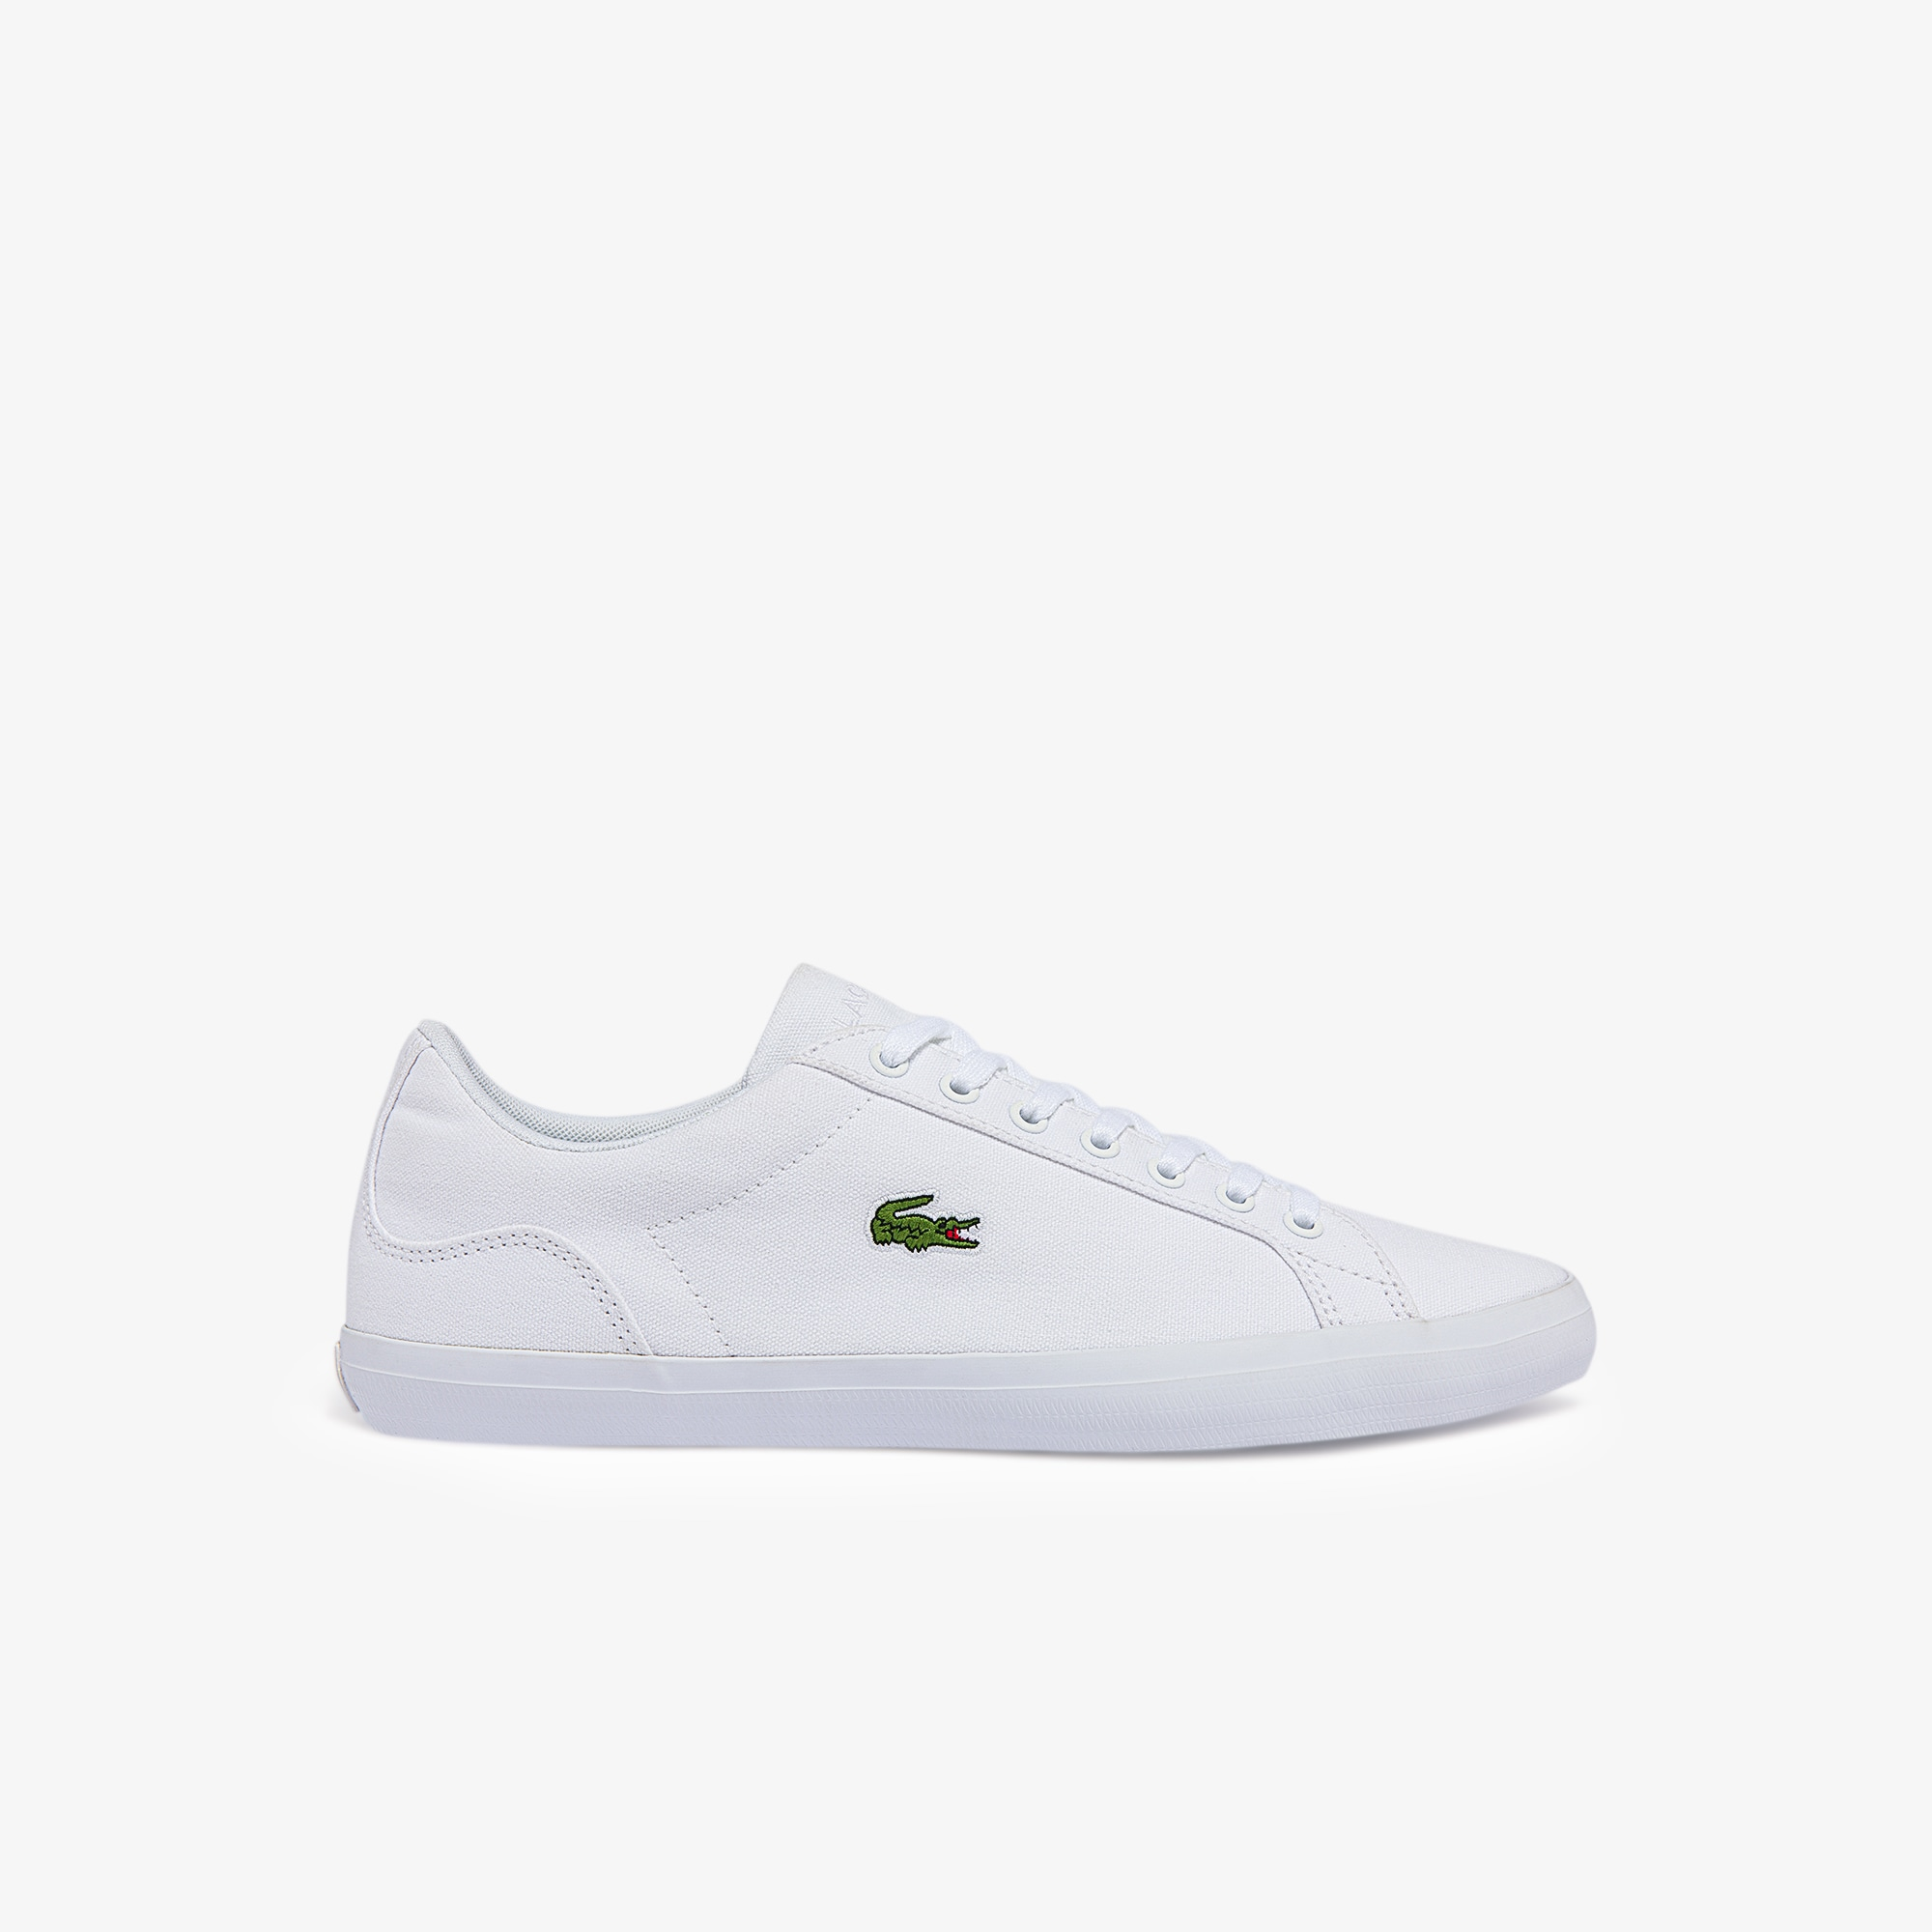 db1104438f Sneakers homme, baskets et chaussures homme | LACOSTE